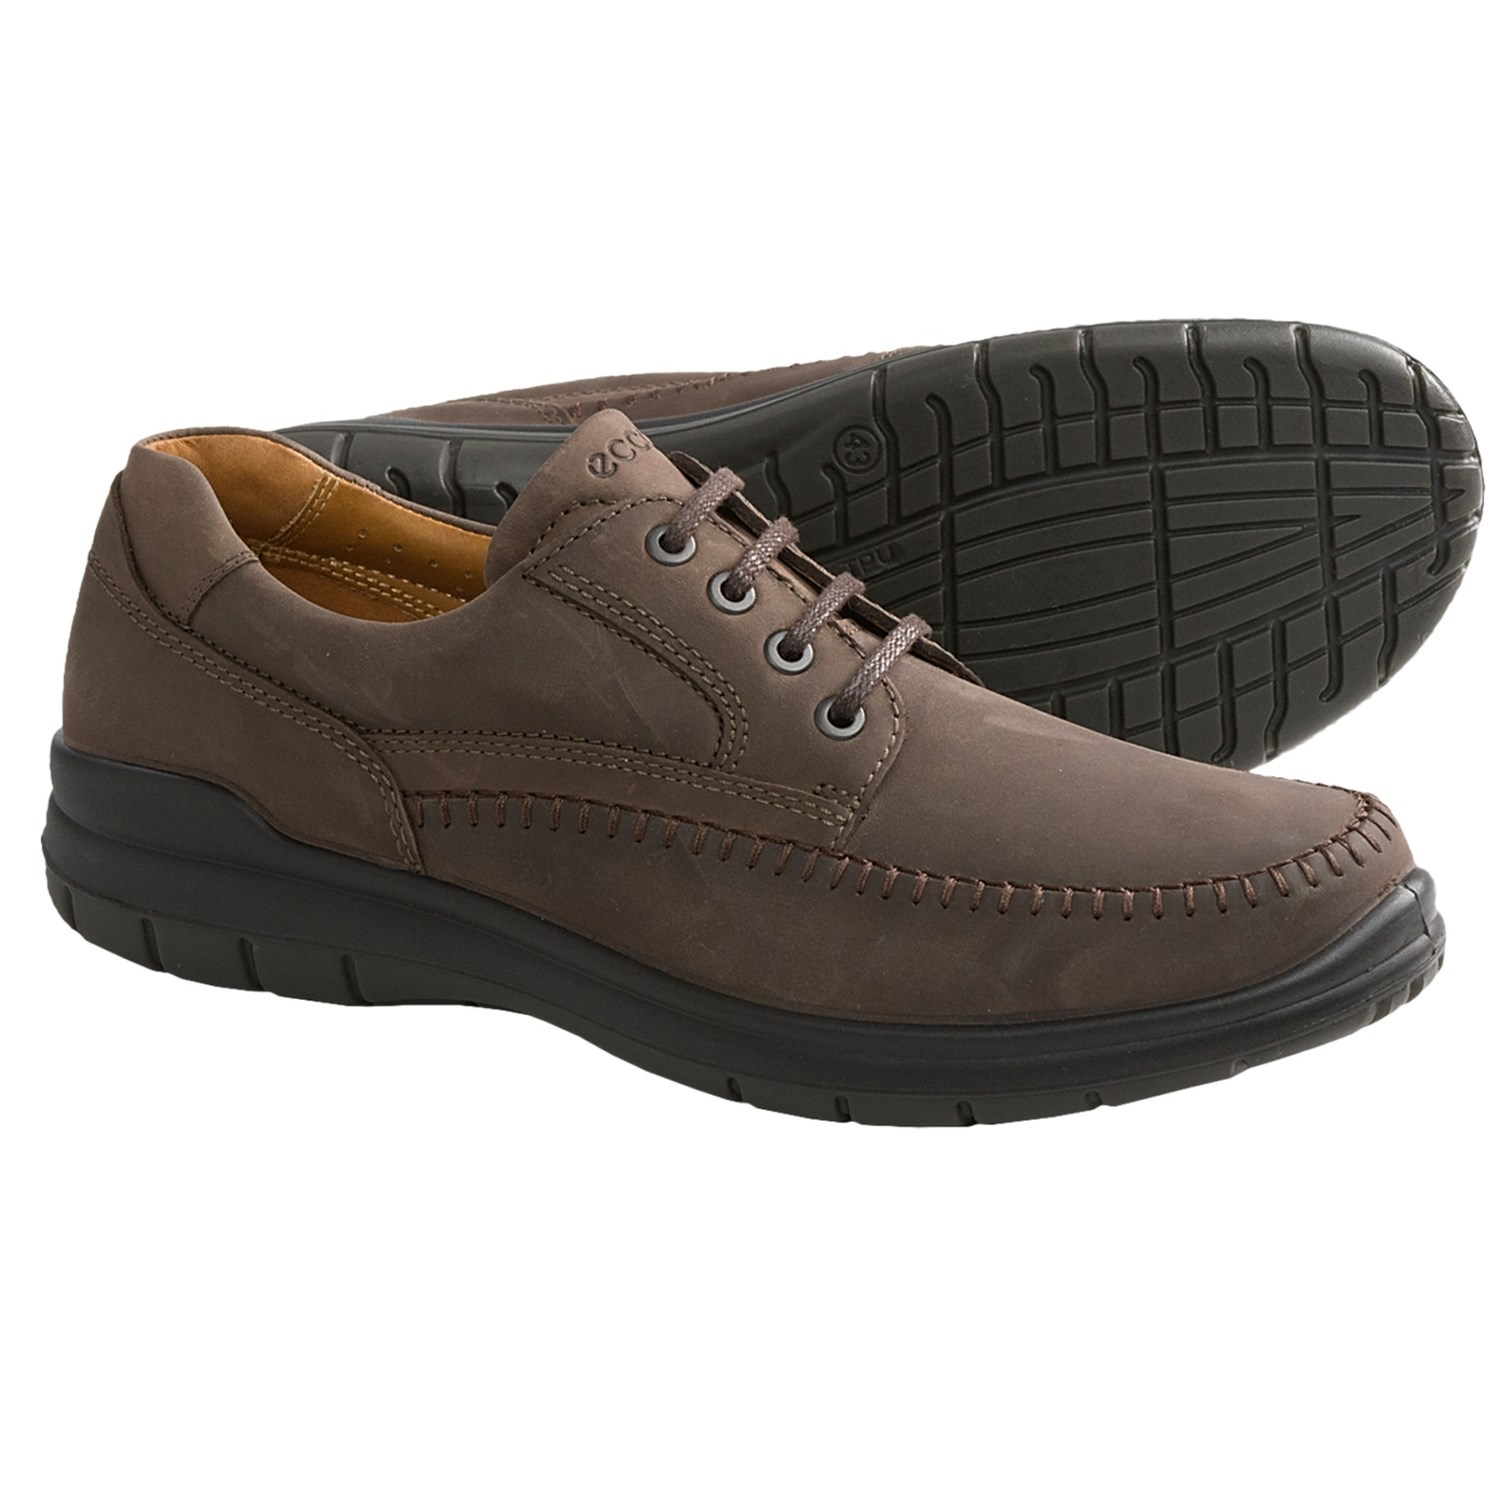 ecco shoes Shop ecco sport and golf shoes and accessories for men and women at zappos free shipping both ways, 24/7 customer service with a smile.